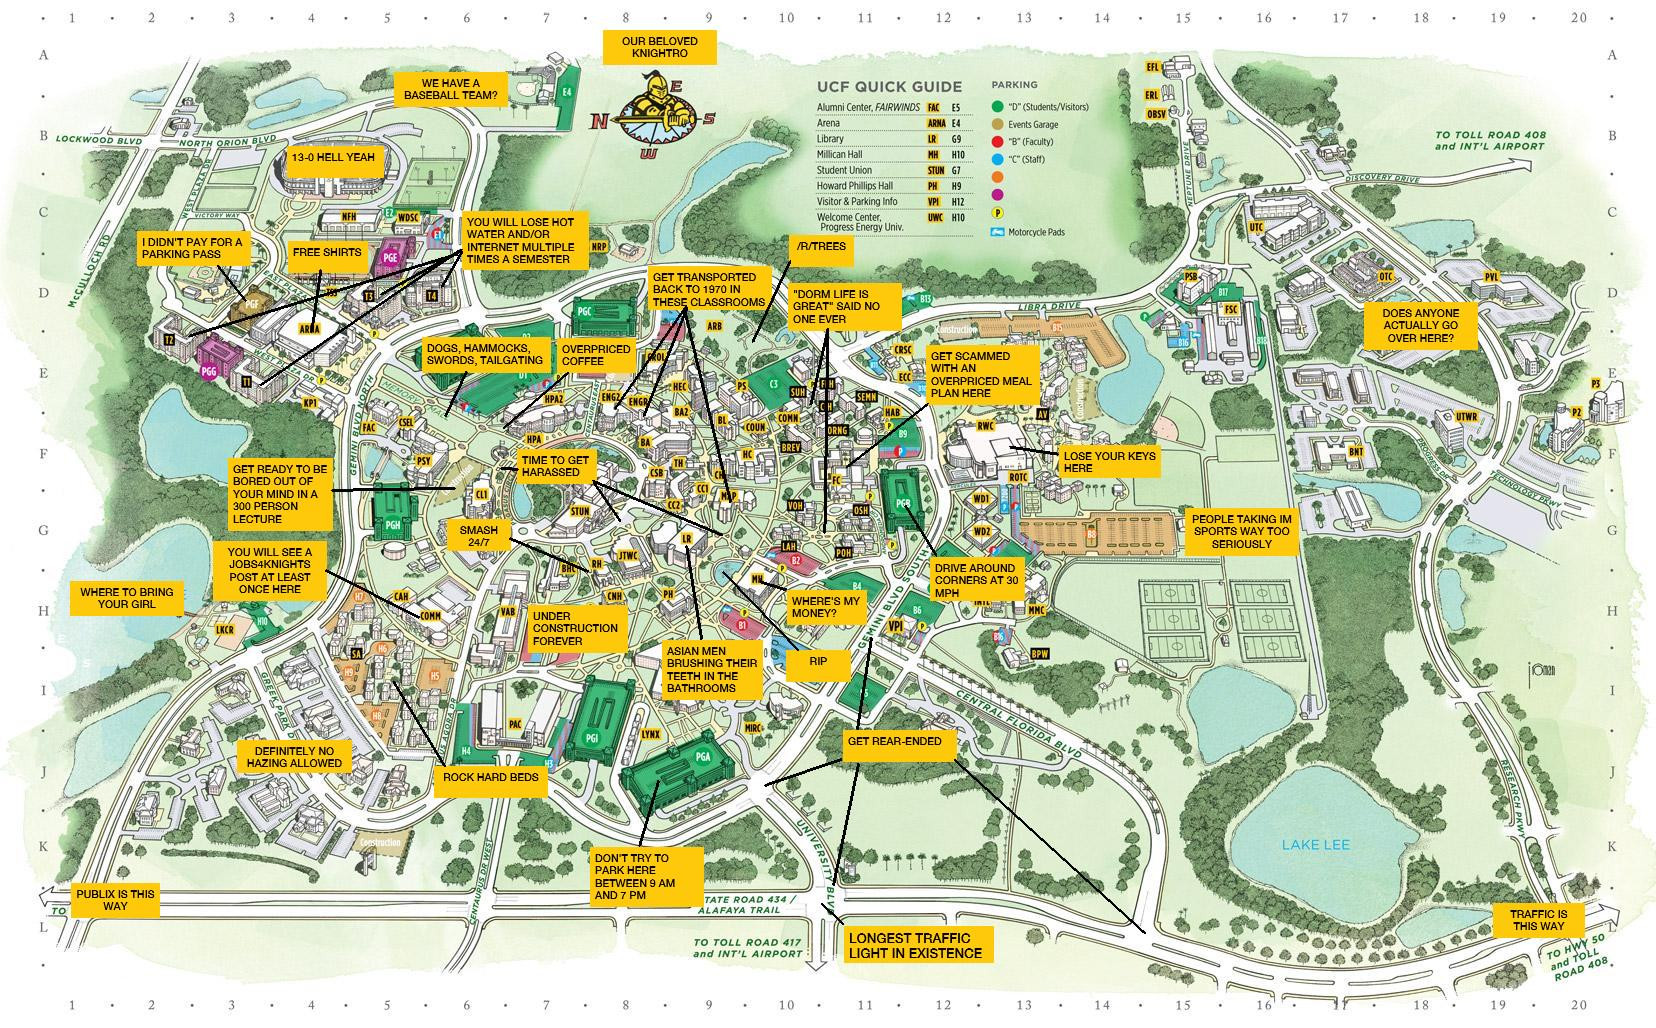 Printable Map Ucf Luxury Map Ucf Free Wallpaper For Maps